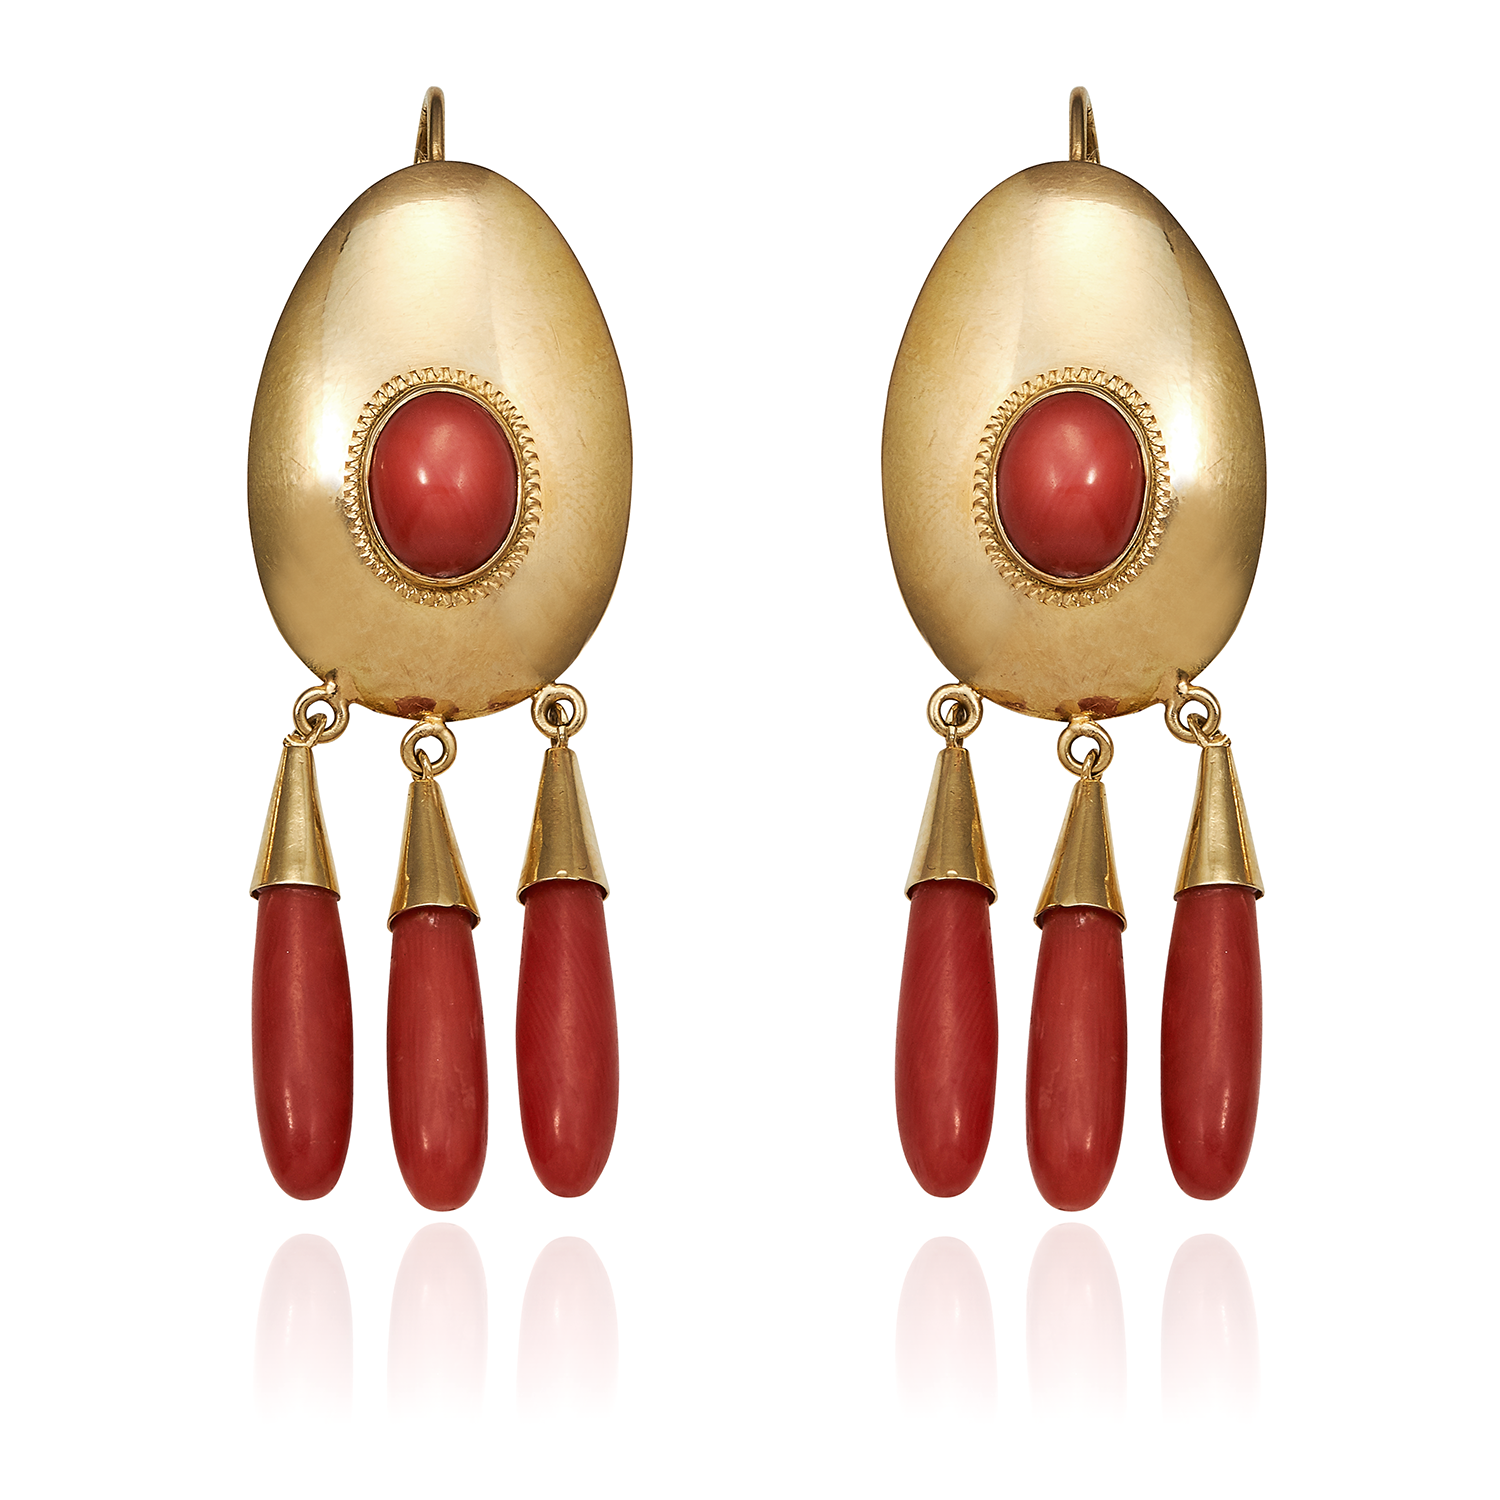 Los 59 - A PAIR OF CORAL EARRINGS, CIRCA 1940 in 18ct yellow gold, the oval bodies set with coral